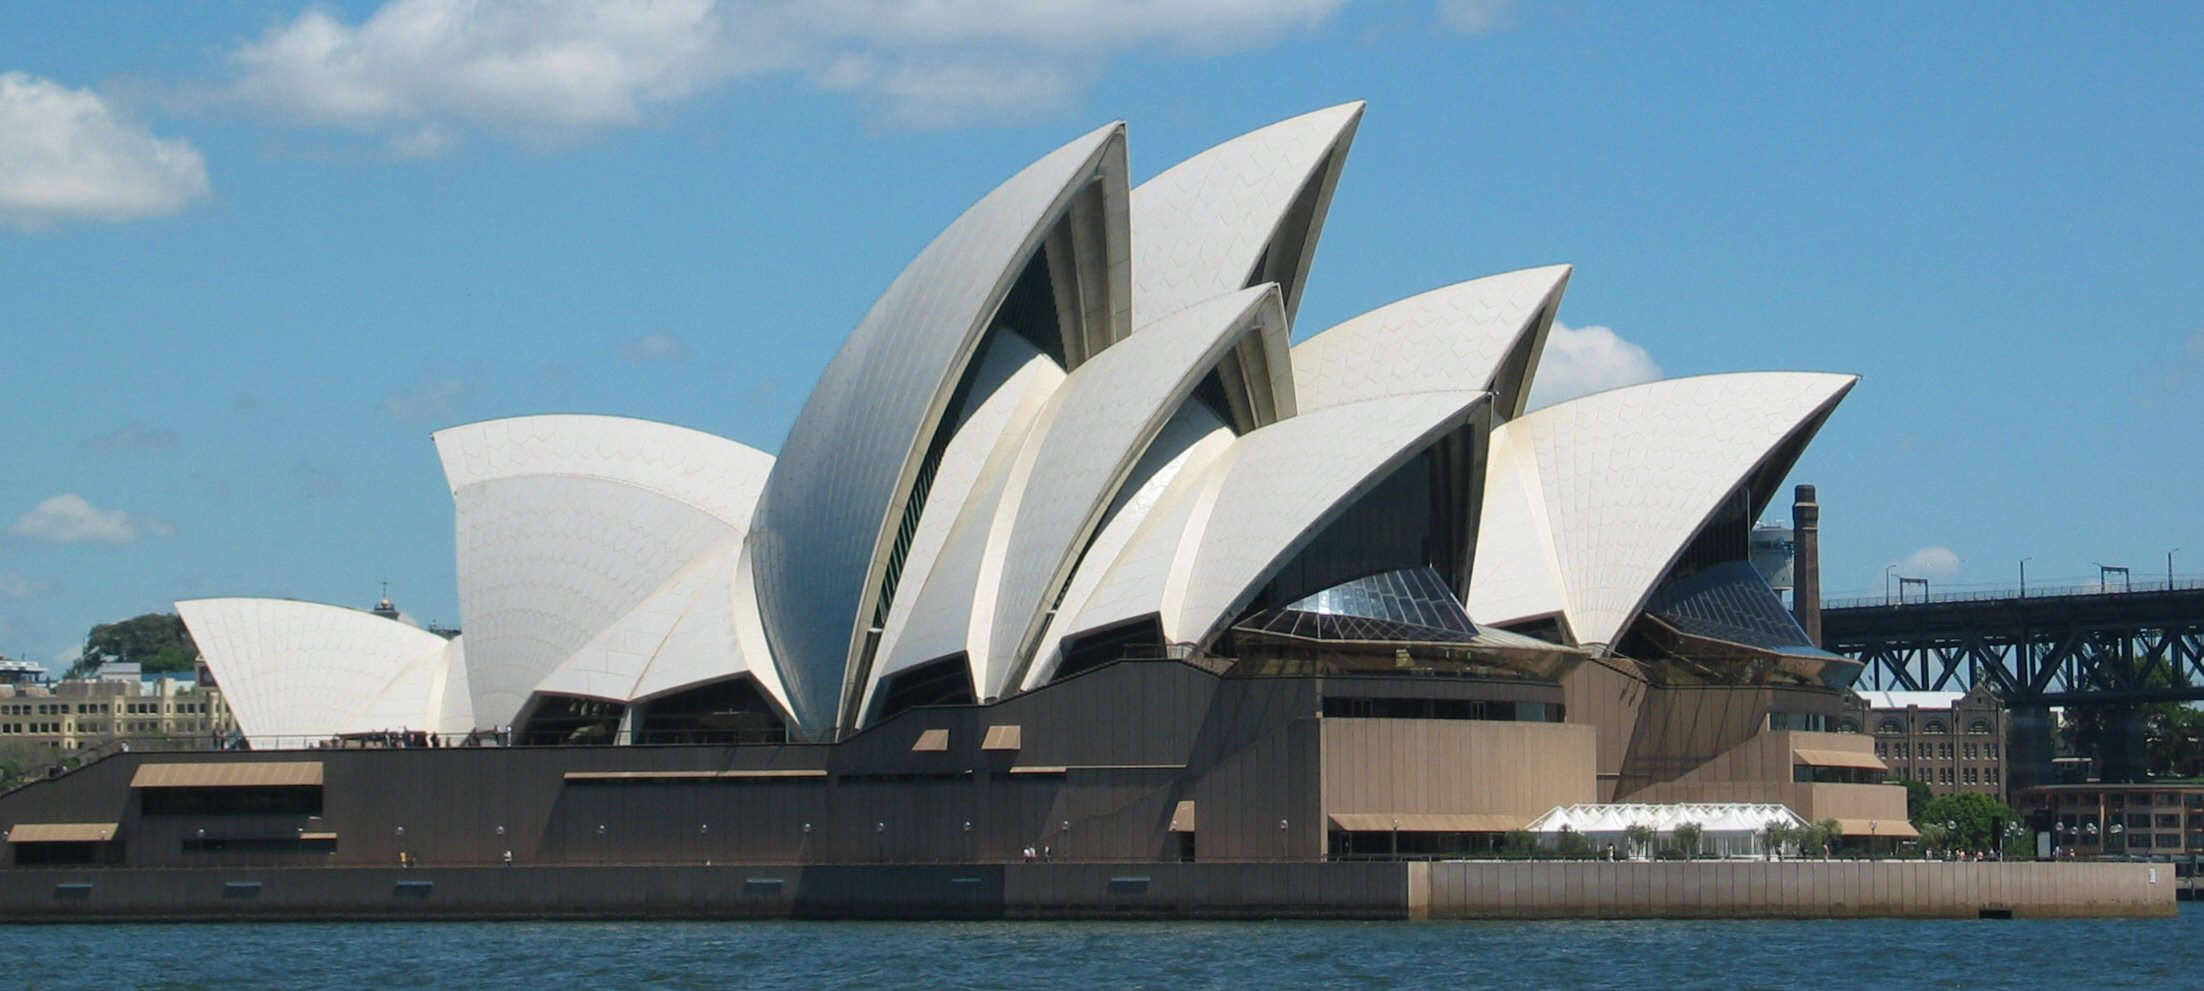 House plans and design architectural design of sydney for Sydney opera housse